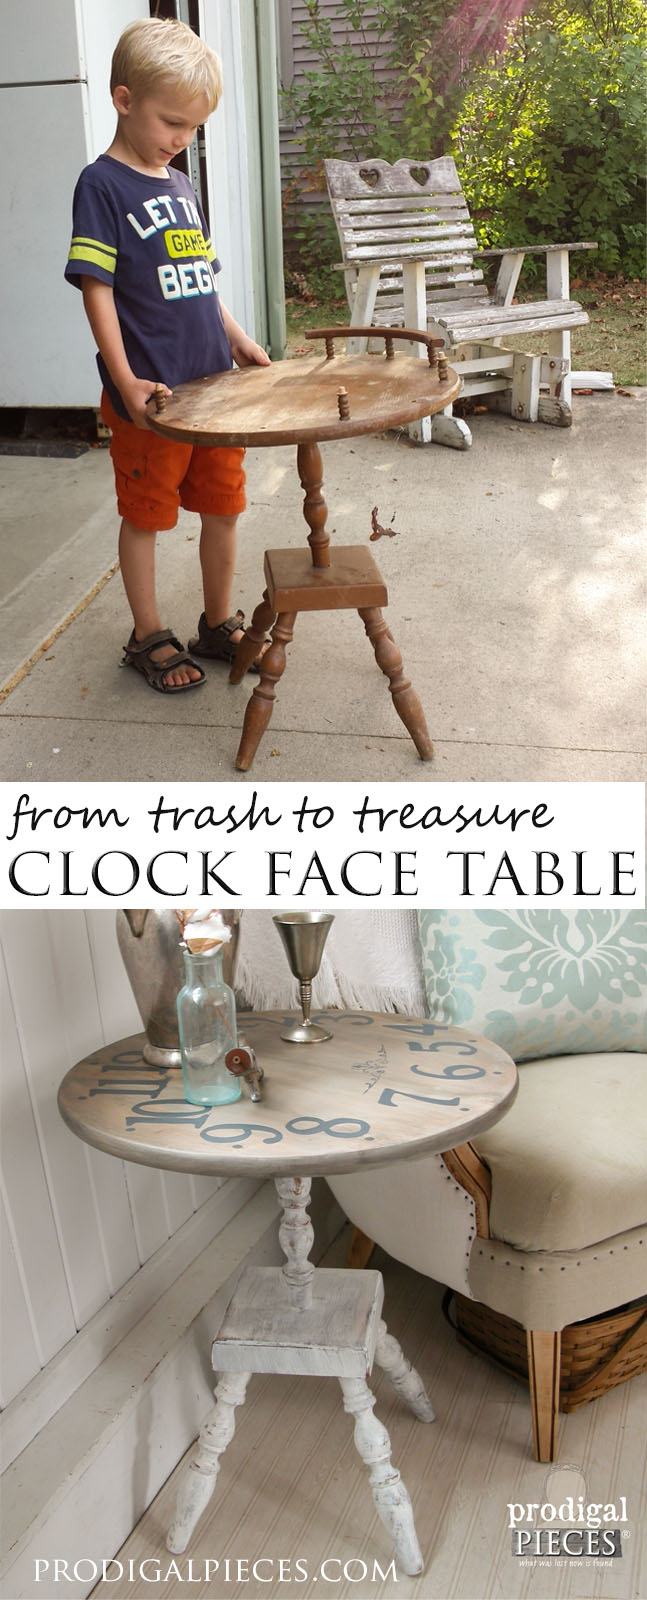 DIY Clock Face Table | Prodigal Pieces | www.prodigalpieces.com